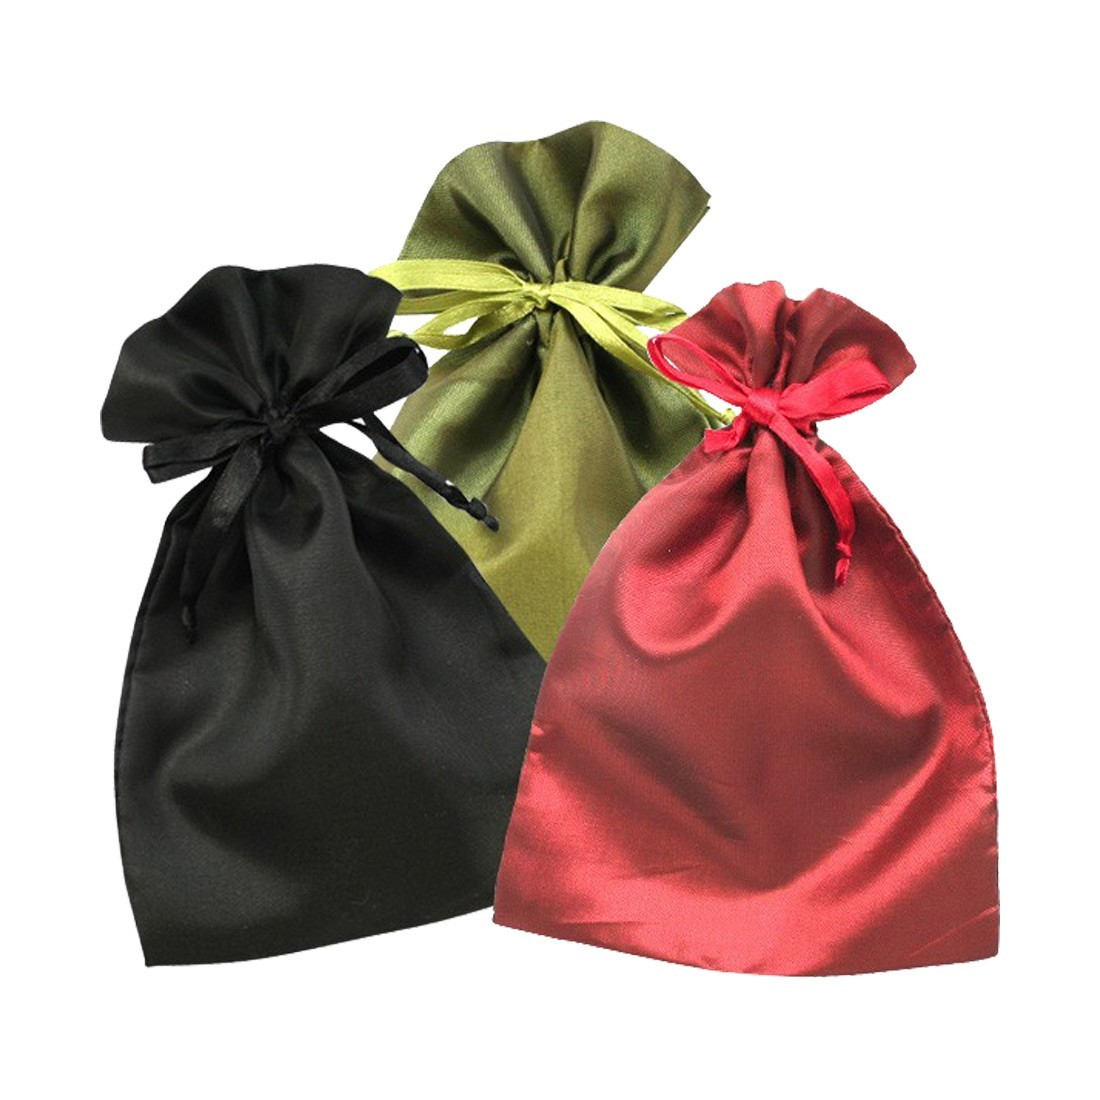 Satin pouches for jewels and costume jewelry